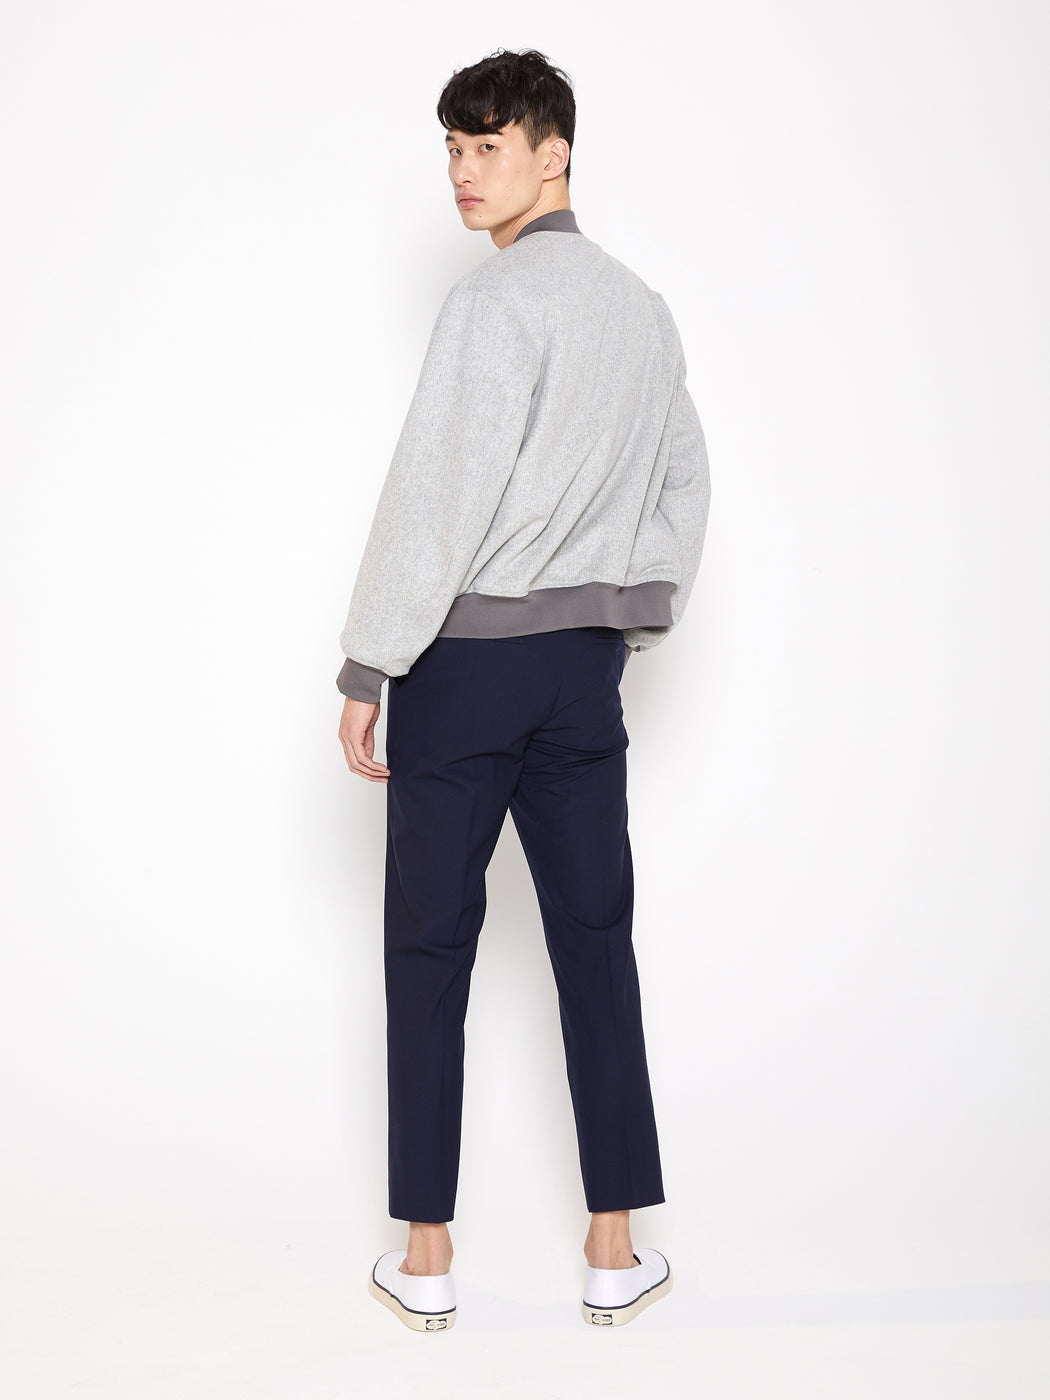 Model wearing Men Reversible Wool Patch Bomber in Stone Grey/ Melange Grey (Stone Grey Back View)